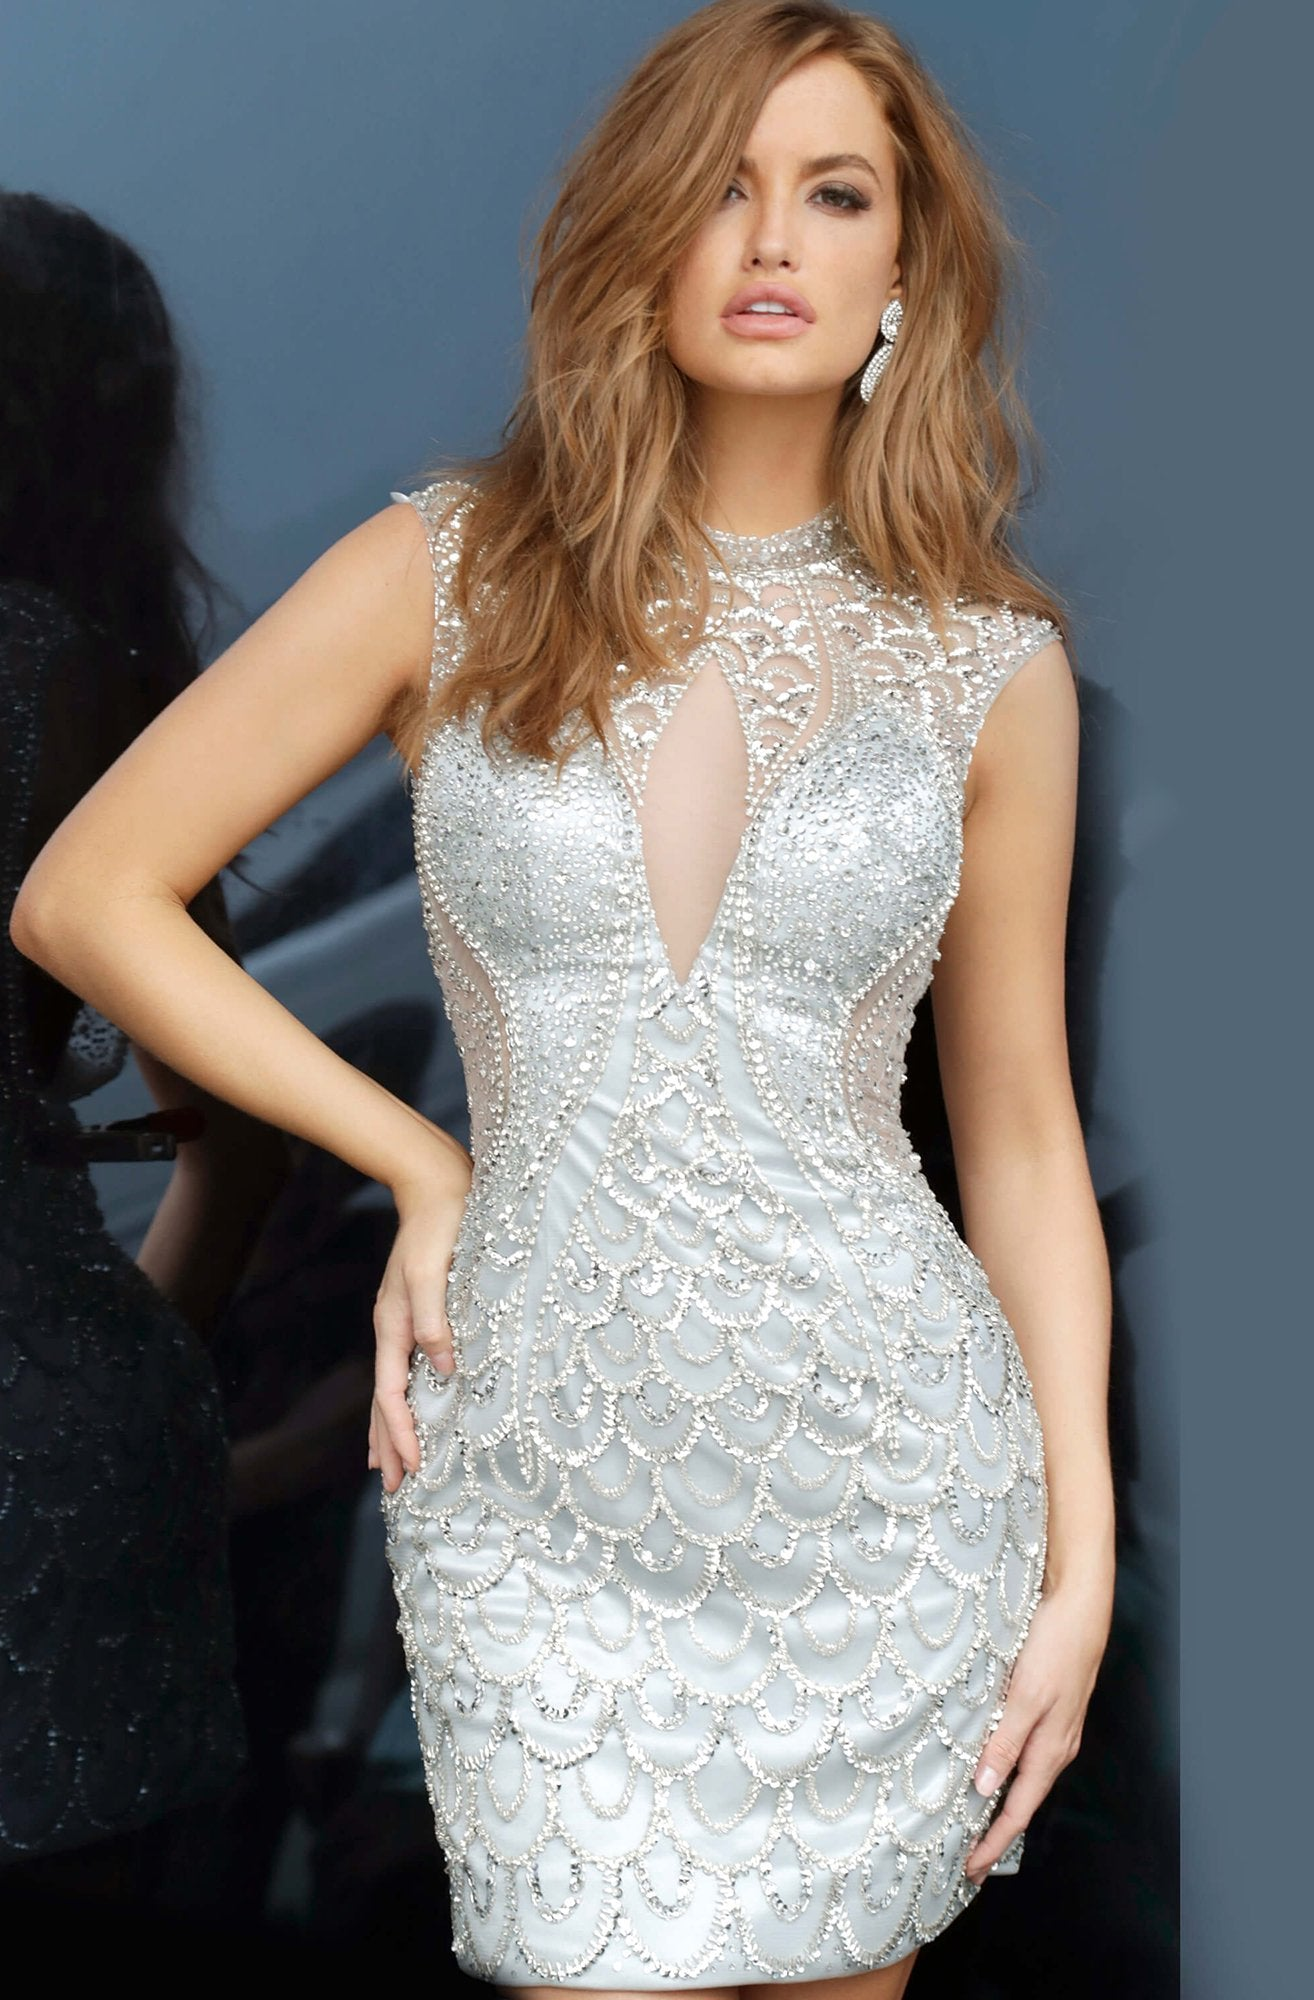 Jovani - 4423 Illusion Embellished Short Sheath Dress In Silver